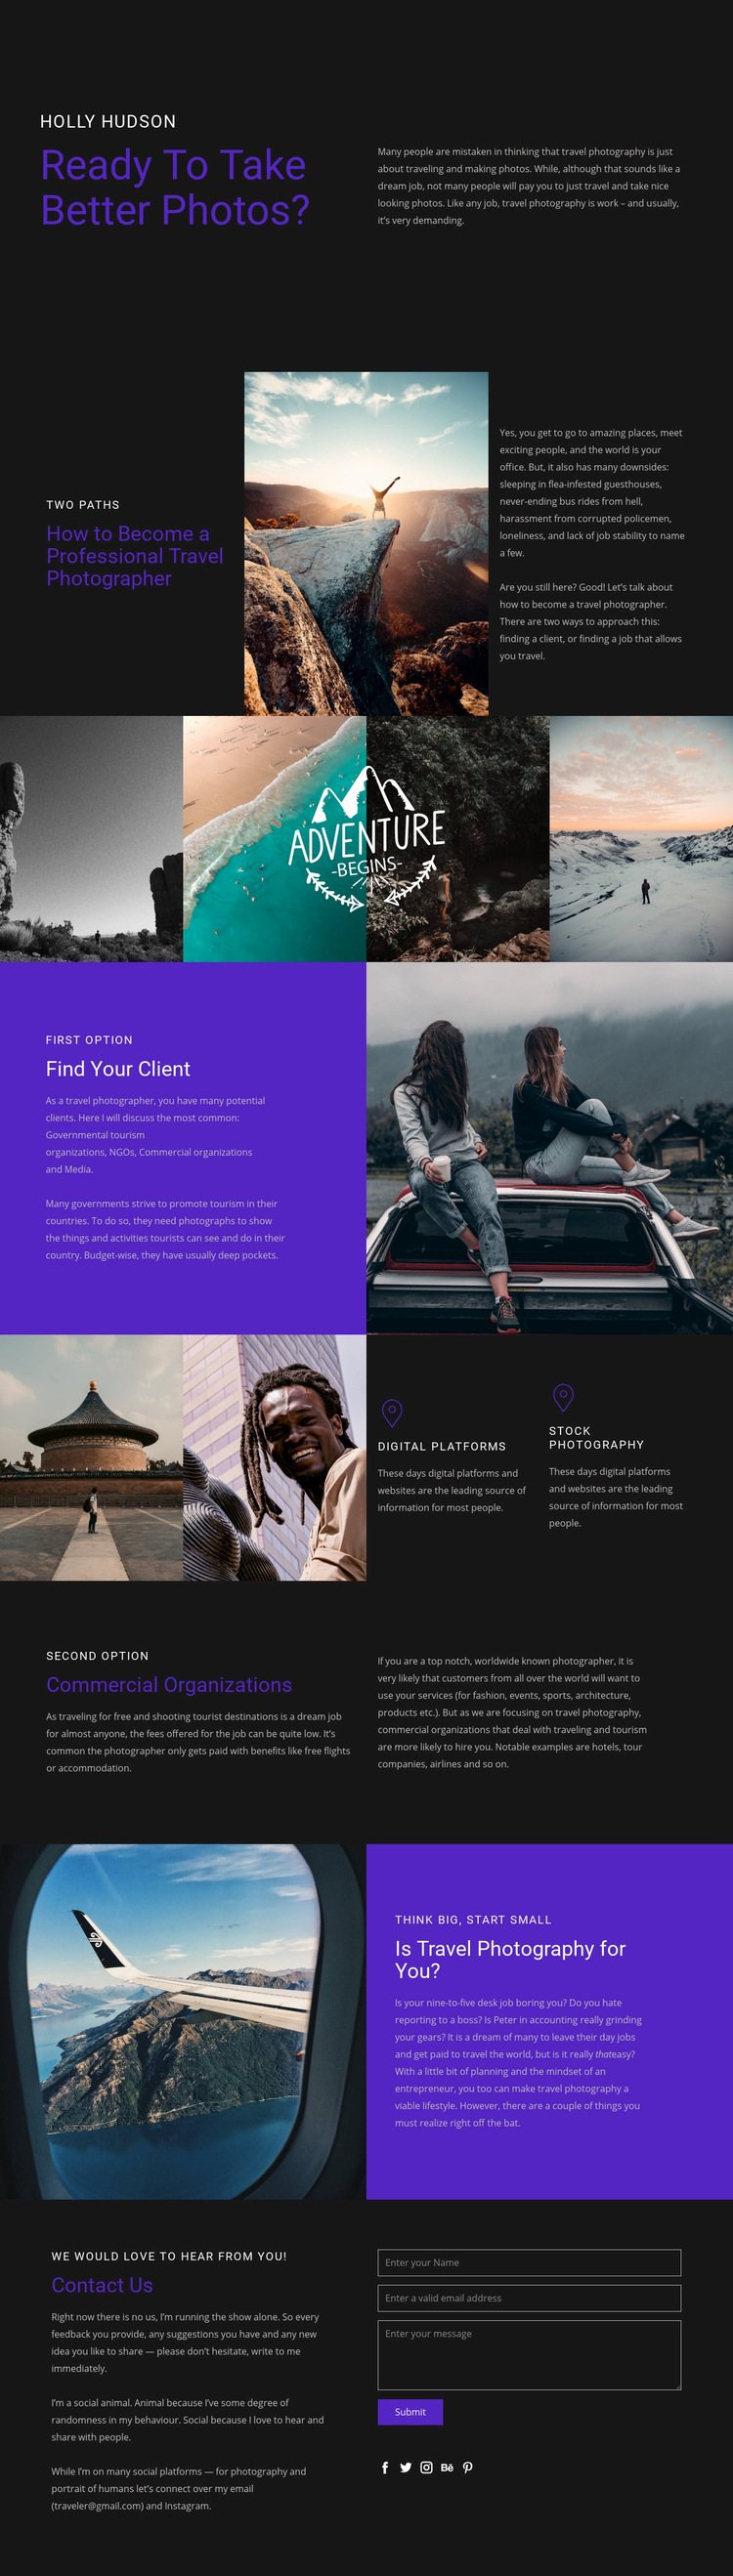 Travel and photography Web Page Design